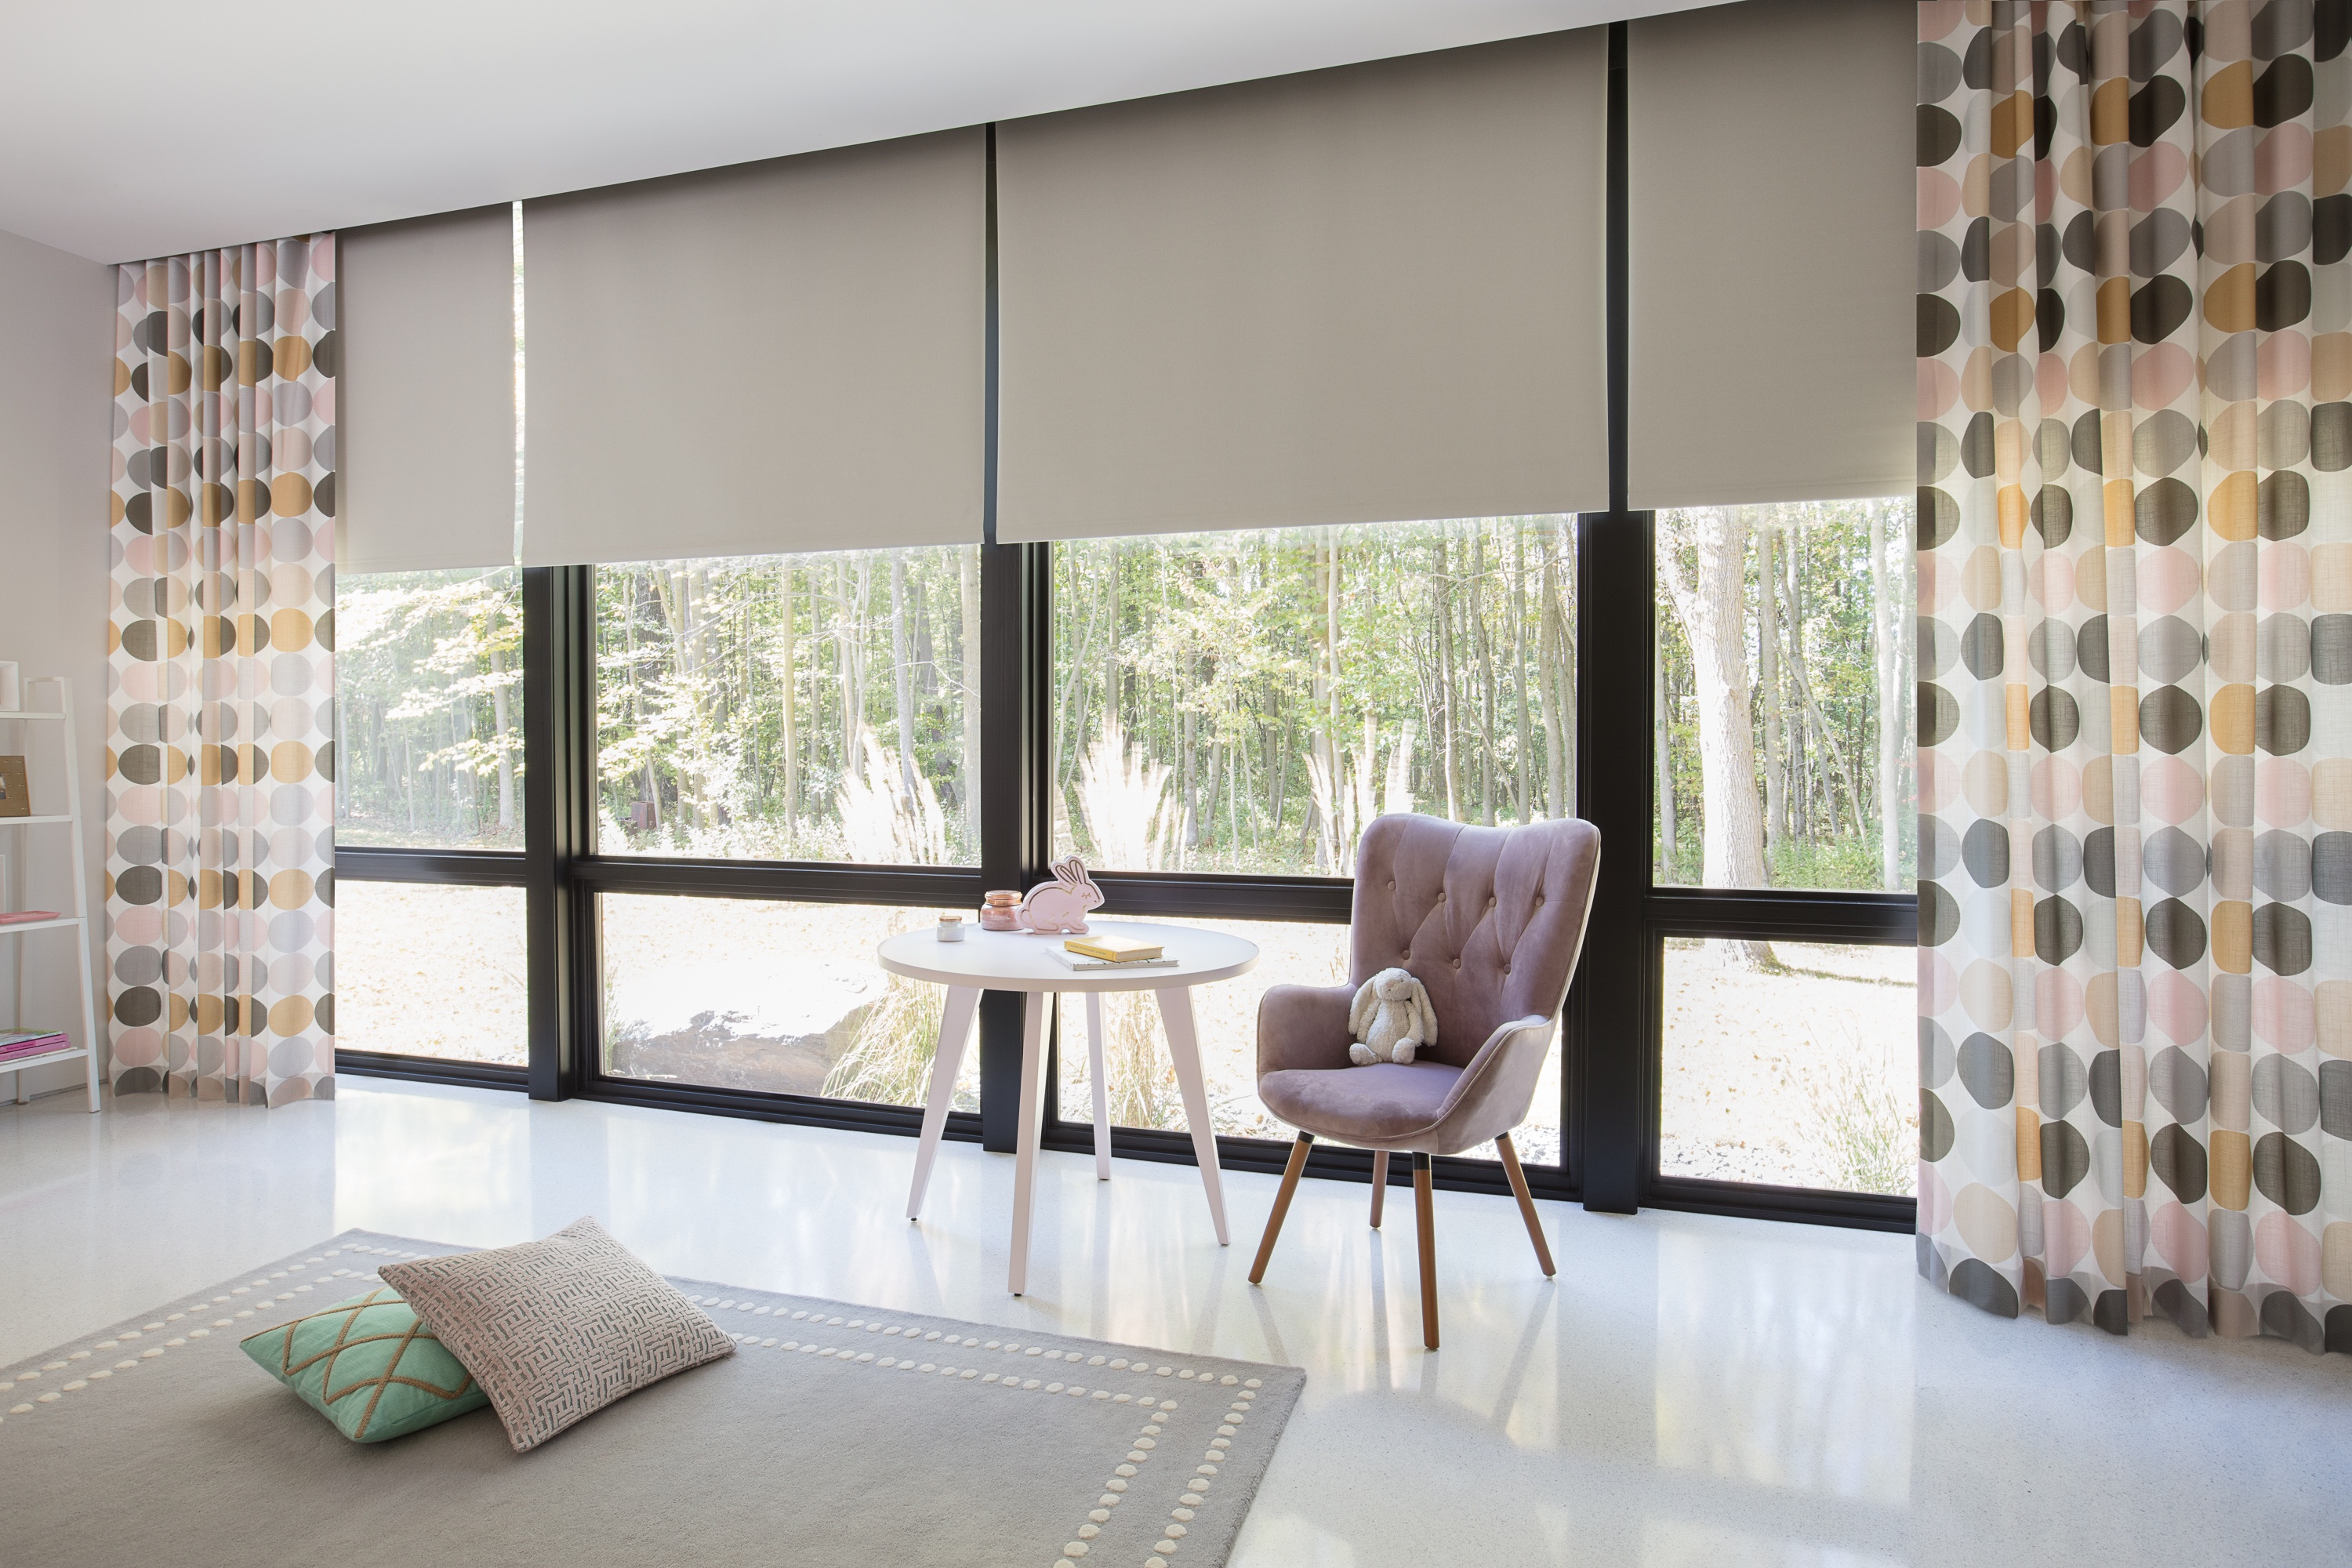 Roller Shades - Blackout - Hudson - Cream Drapery - The Novogratz - Colored Dots - Mink